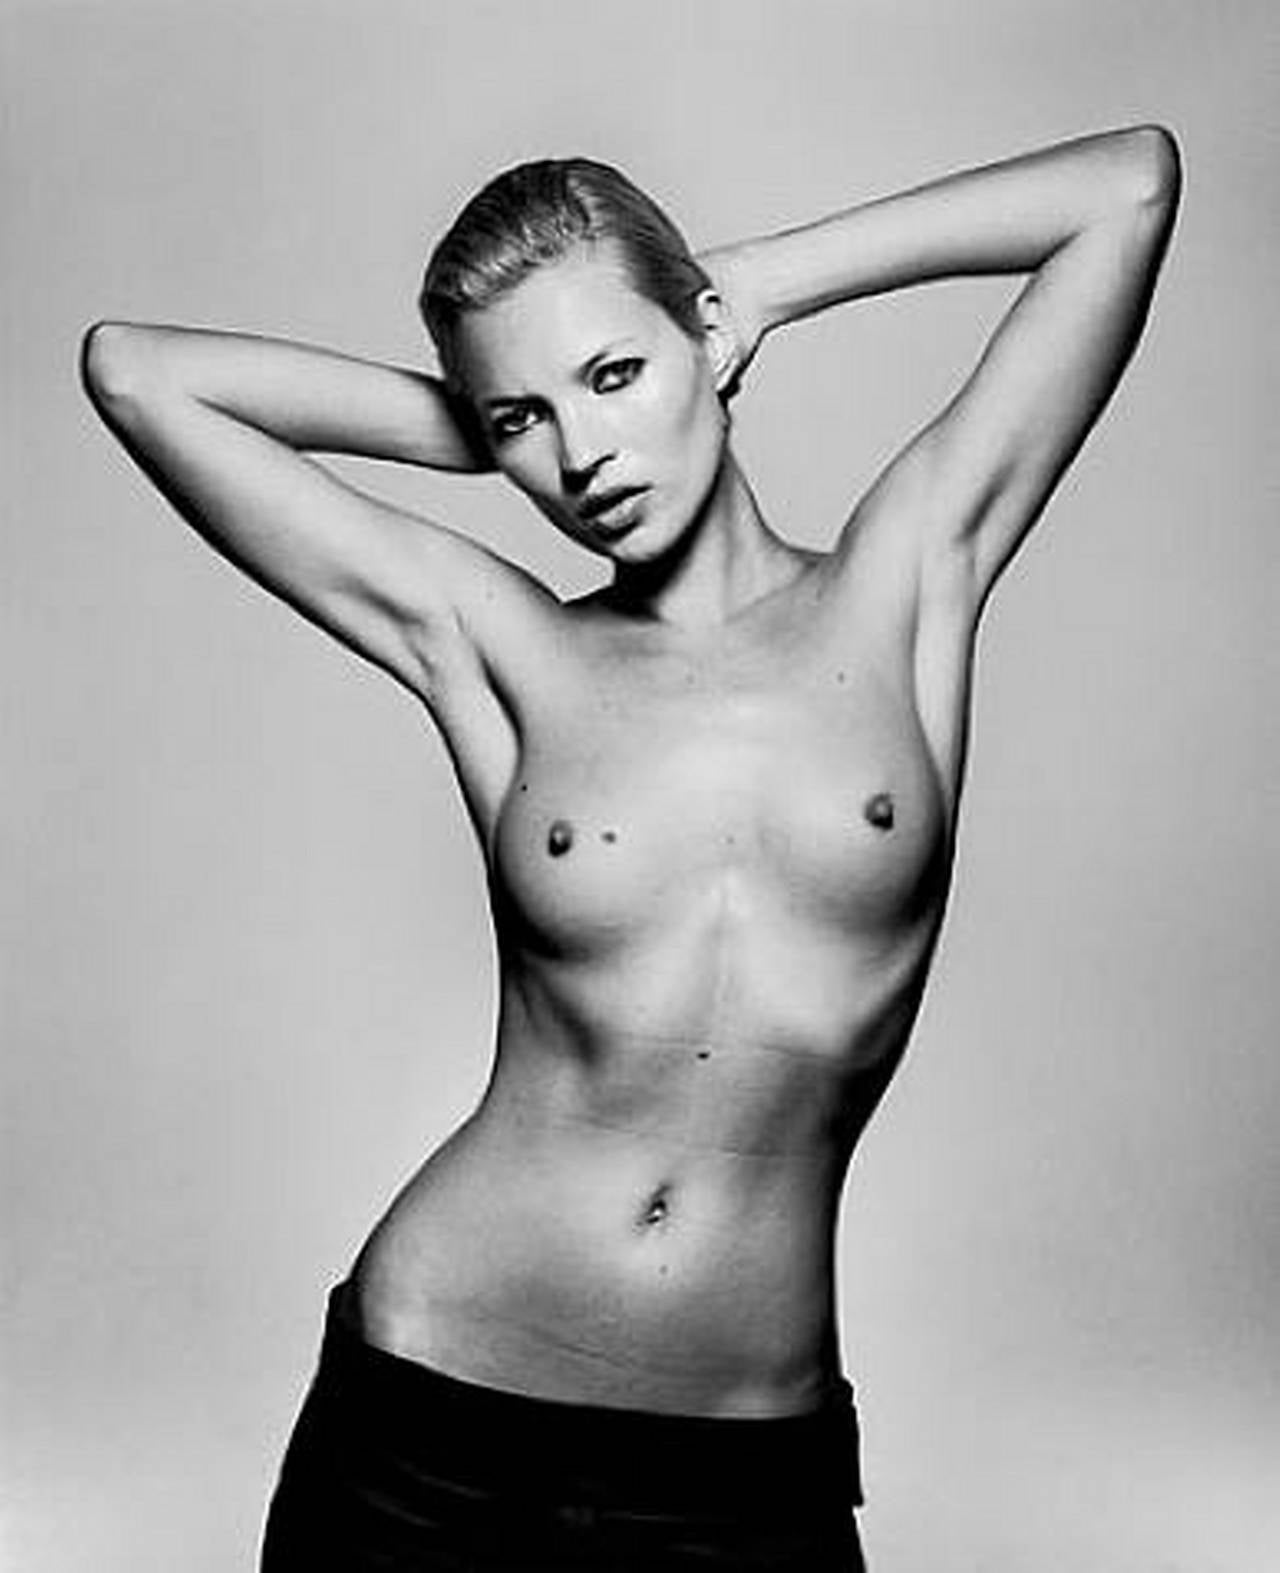 kate-moss-naked-pics-amanda-todd-nude-photos-xxx